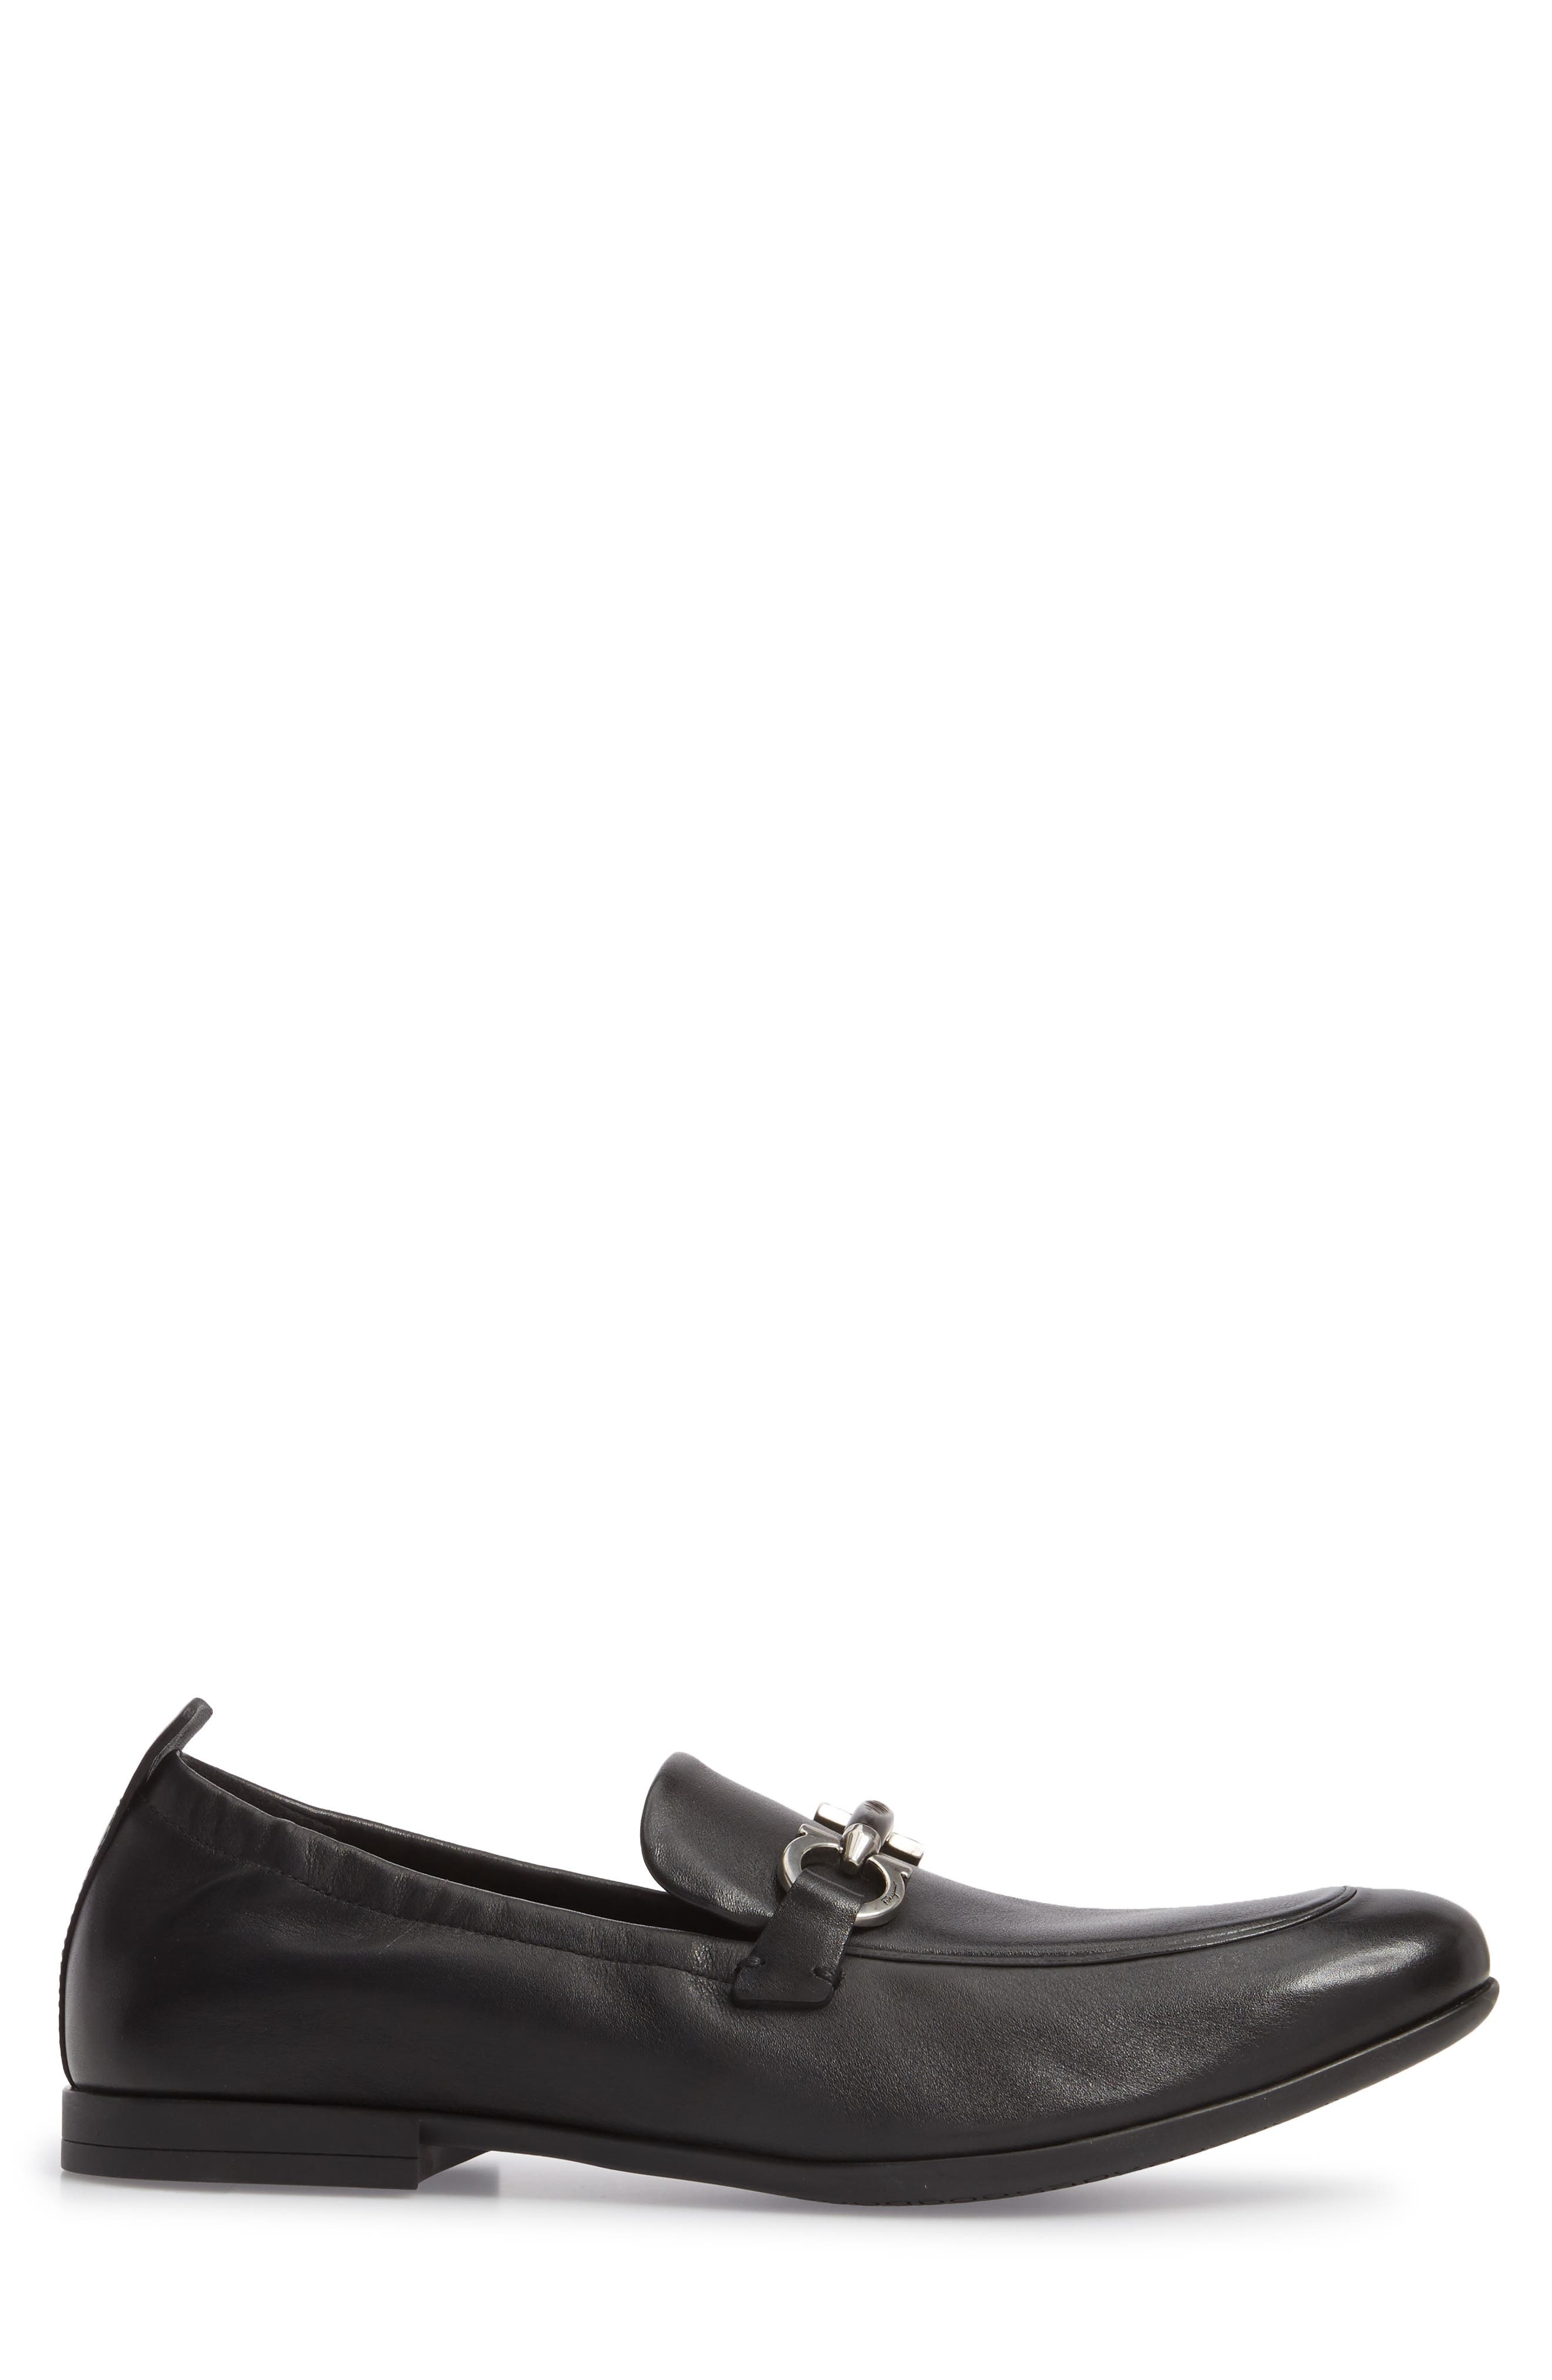 Celso Bit Loafer,                             Alternate thumbnail 3, color,                             Nero